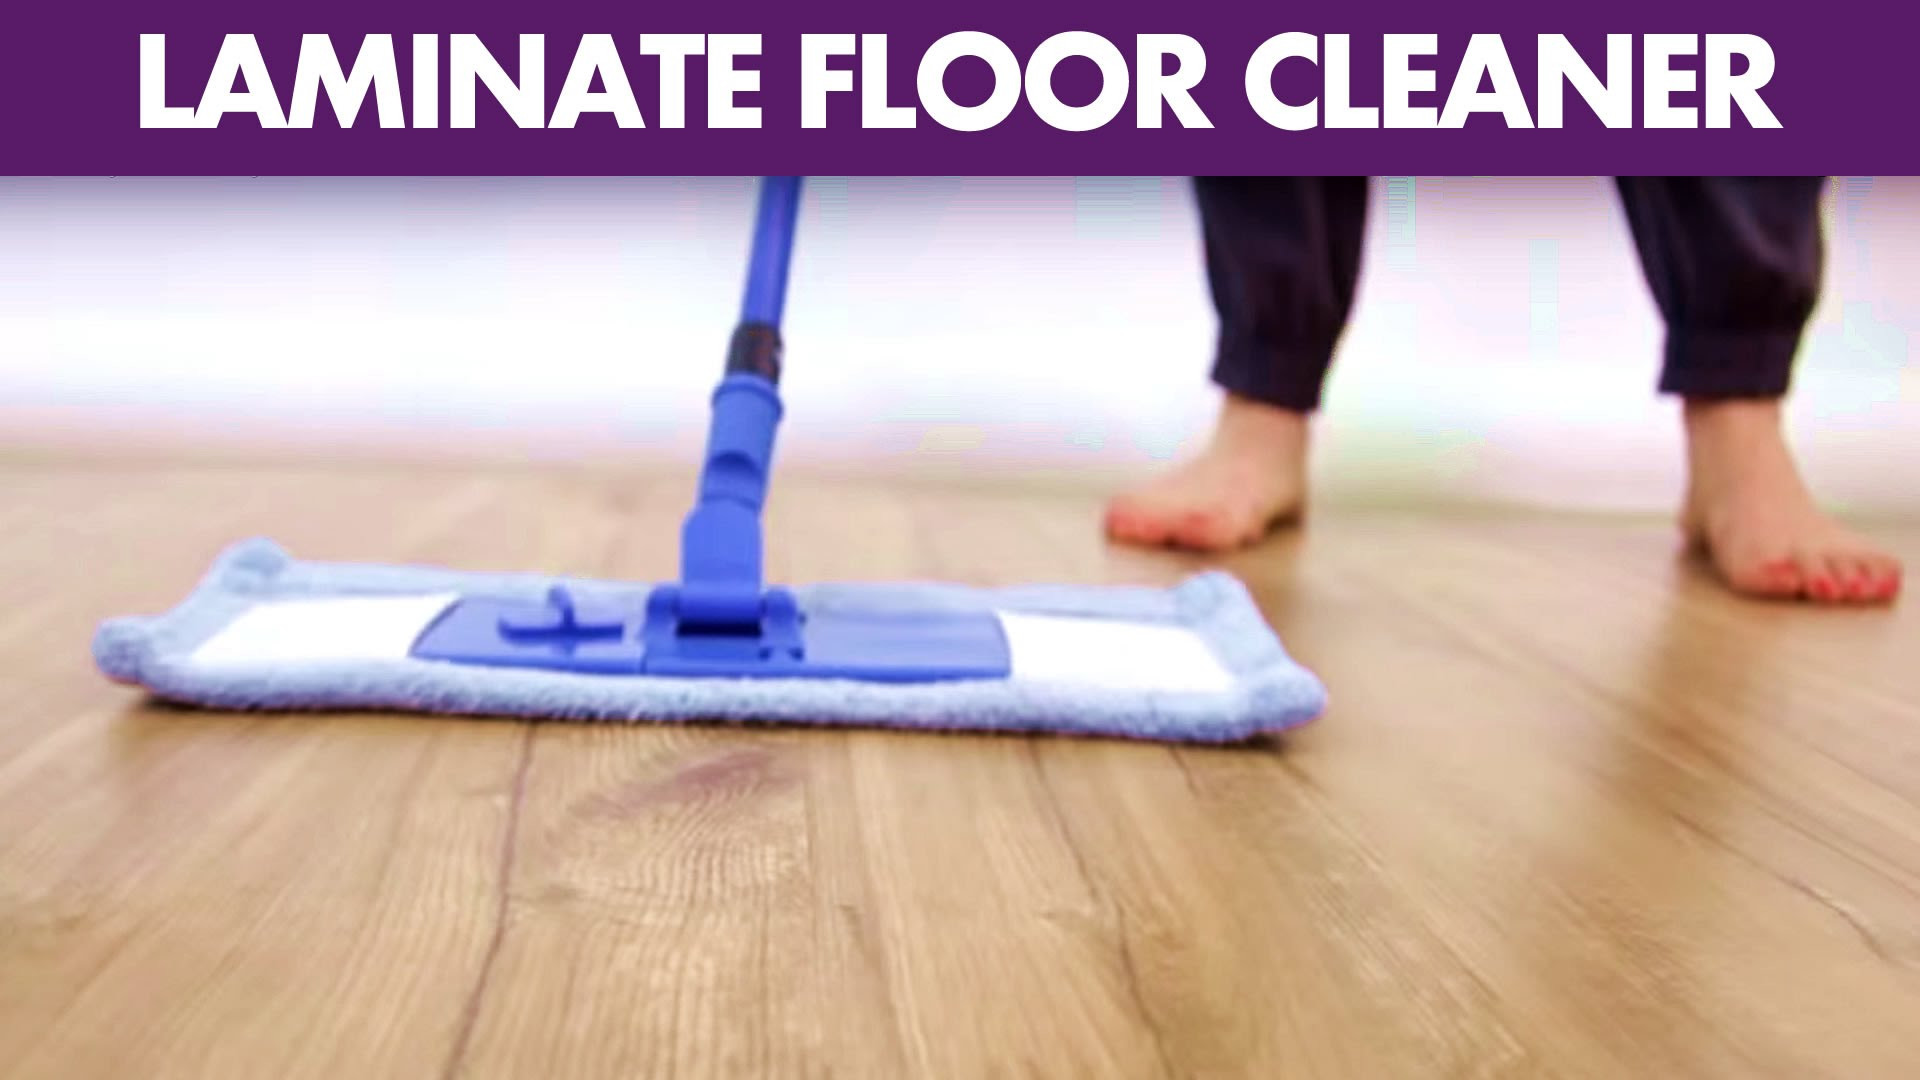 Zep Hardwood Floor Cleaner Vs Bona Of How to Clean Laminate Floors Cool Interior Design Galley Entryway with Regard to Simple Laminate Floor Cleaner U Day U Days Of Diy Cleaners Clean My Space with How to Clean Laminate Floors